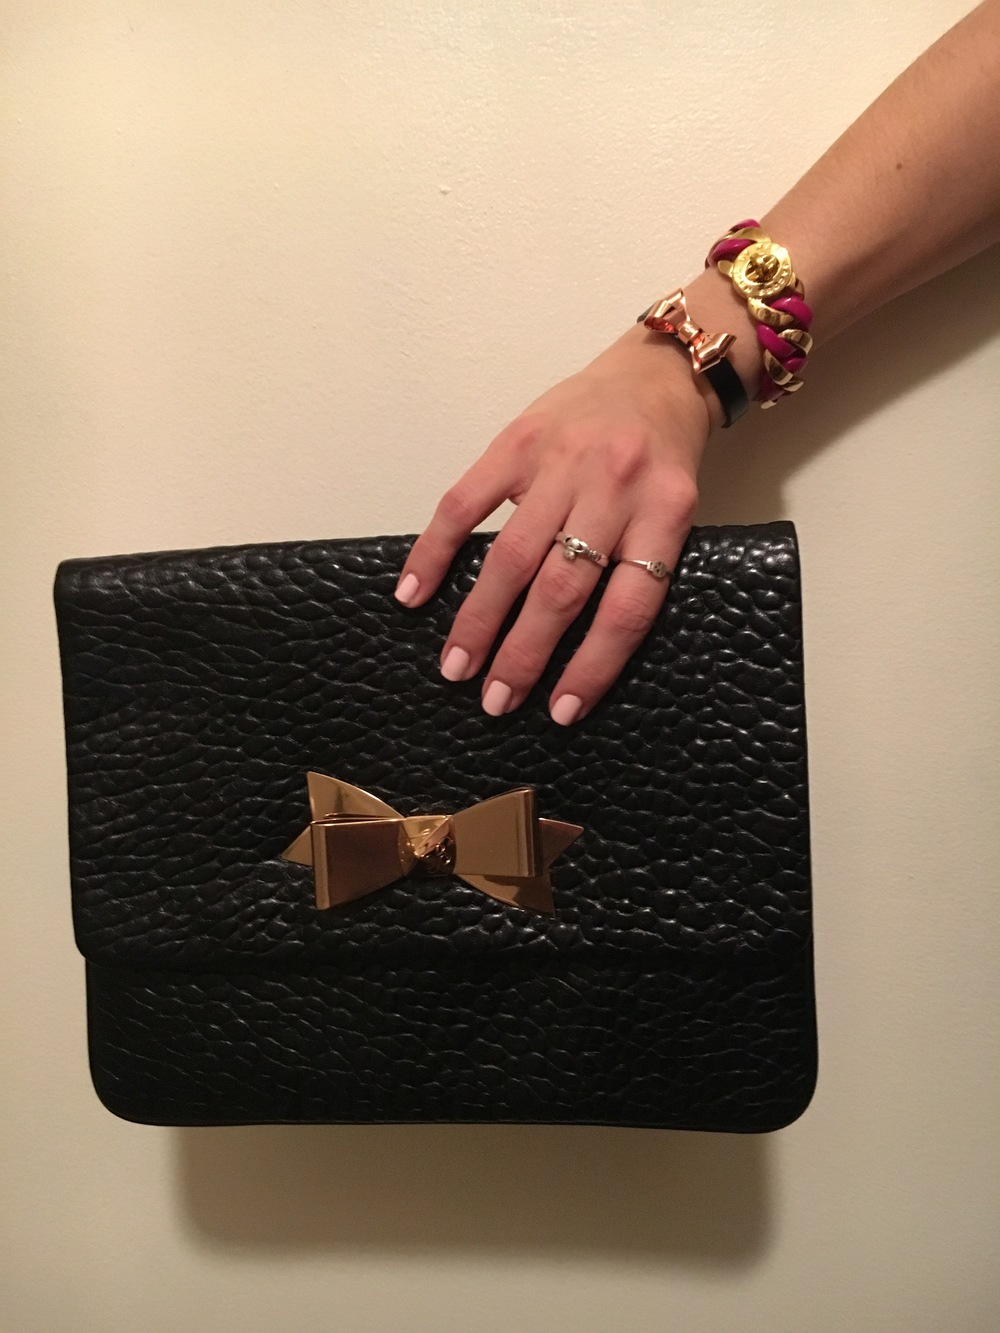 Ted Baker  clutch and bow bracelet,  Marc by Marc Jacobs  link bracelet.